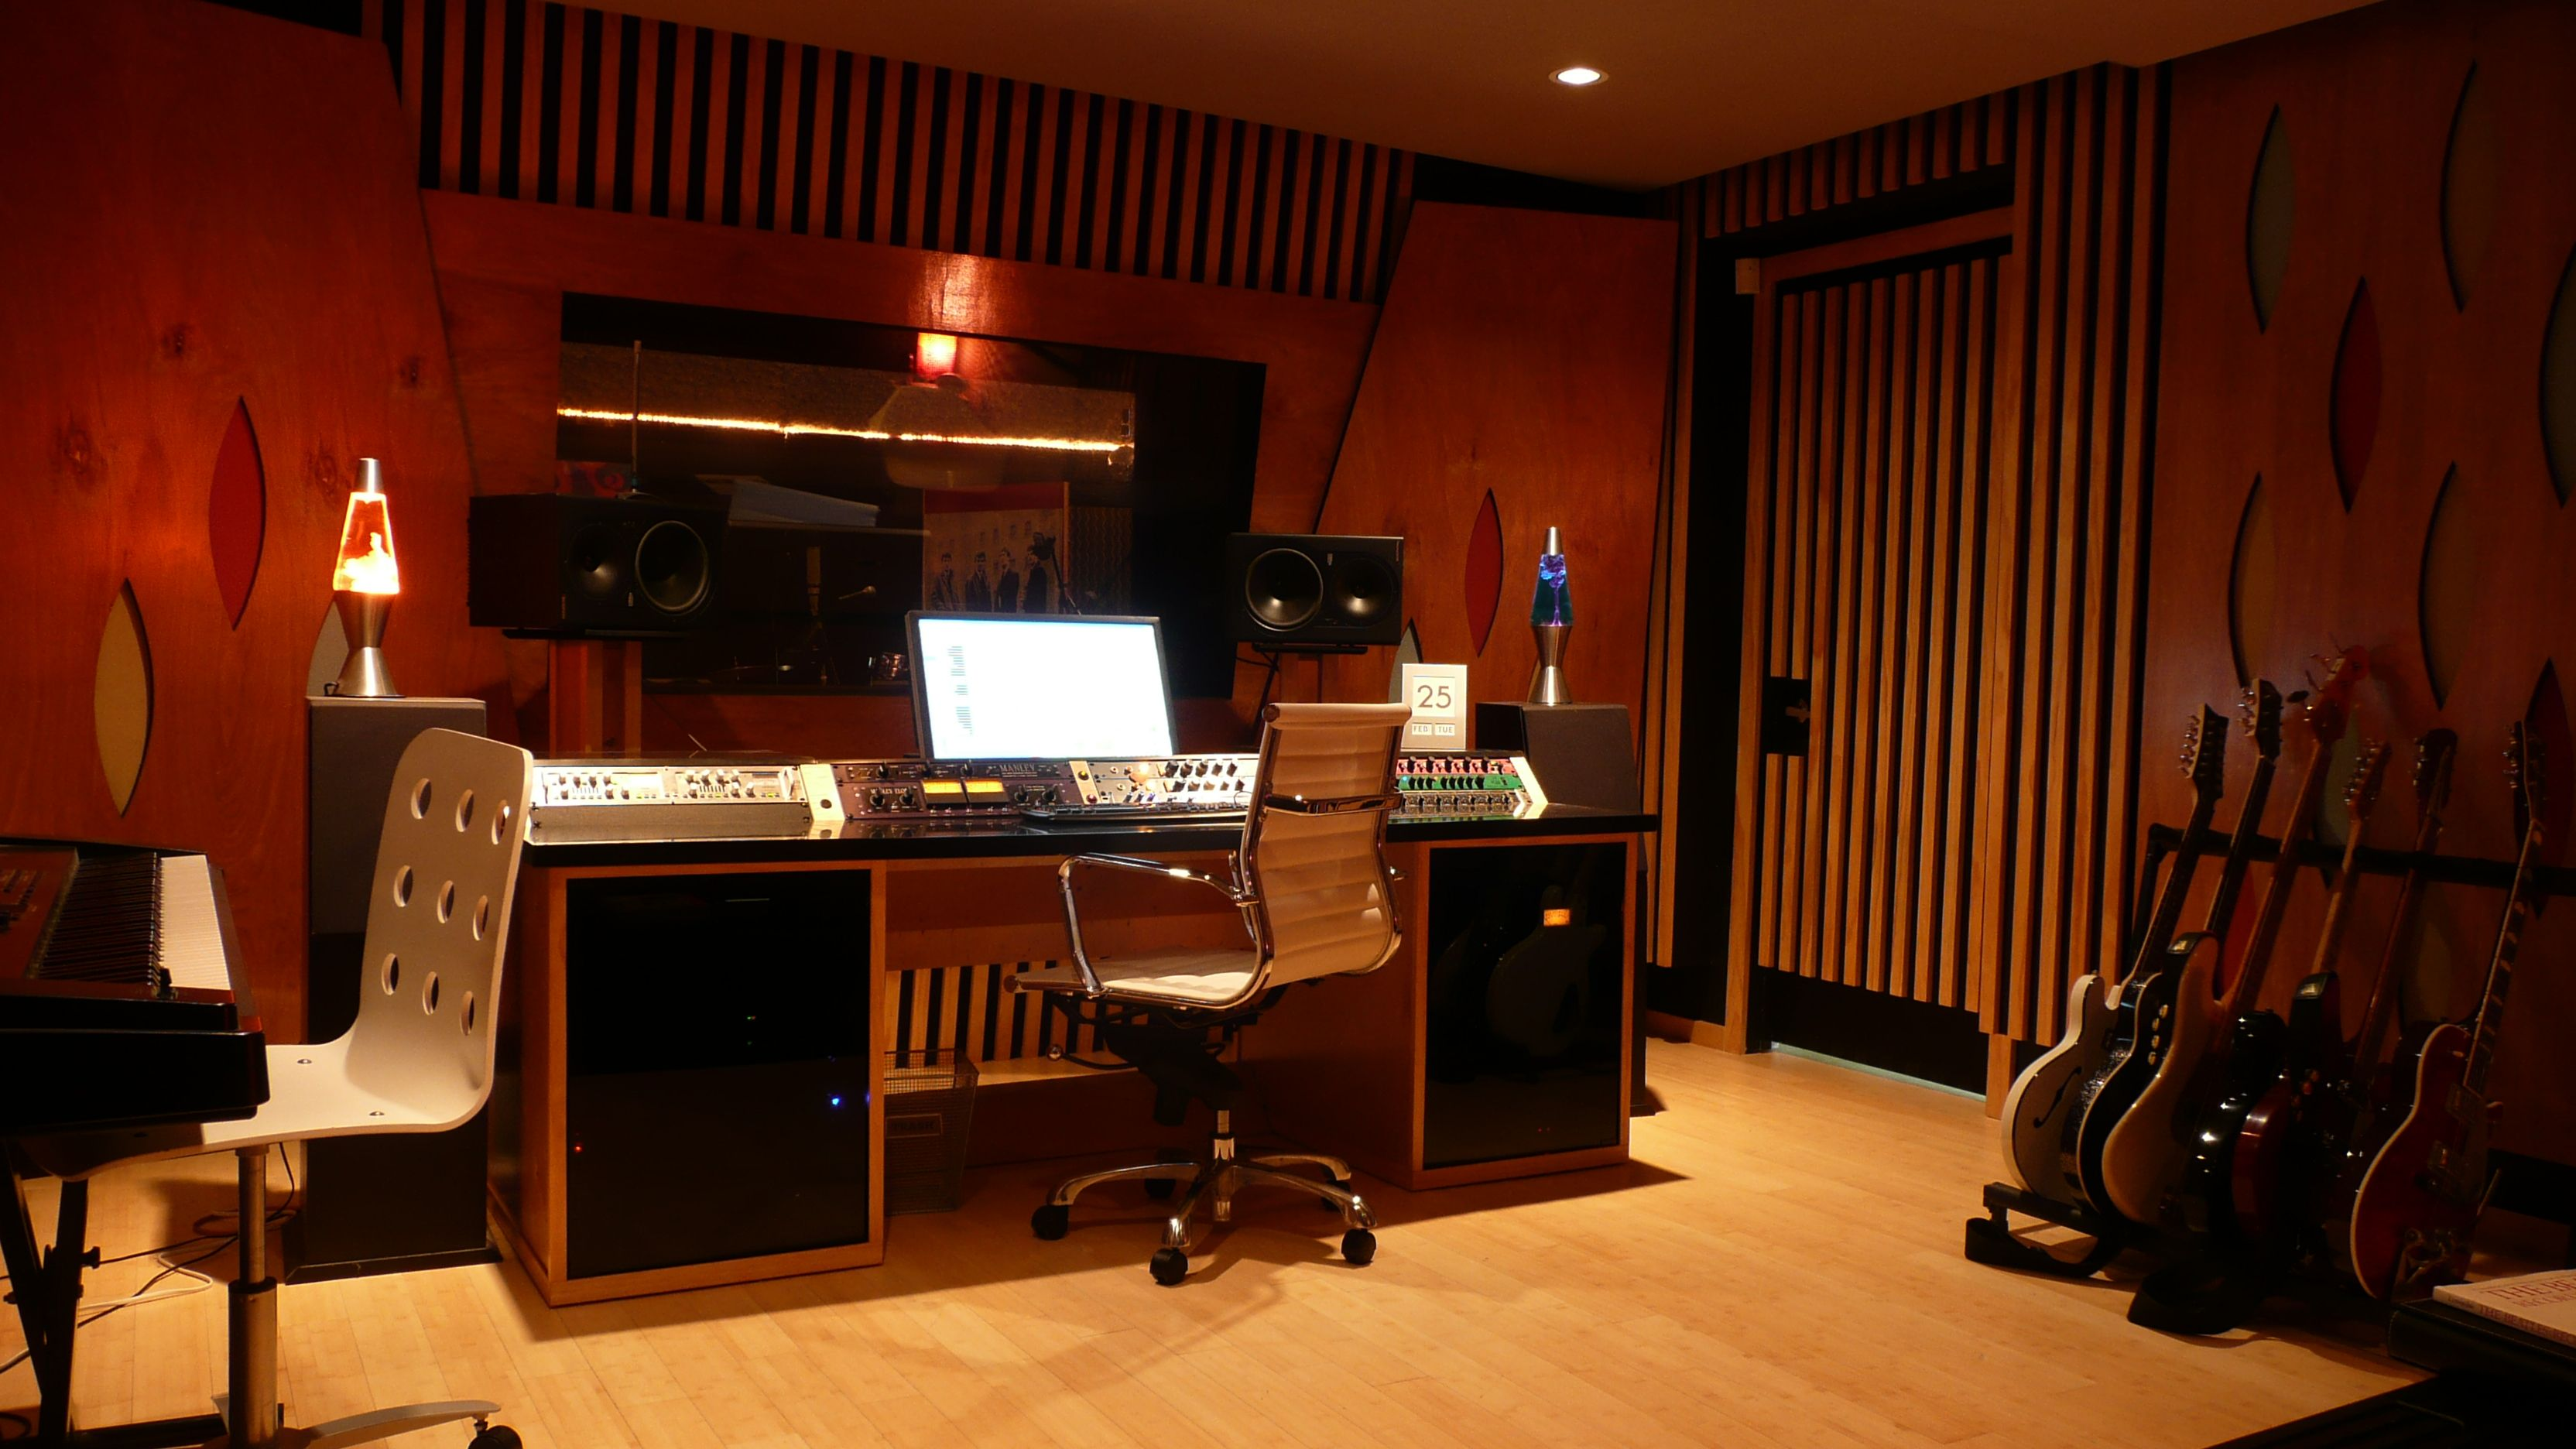 One Of My Dreams Is To Day Have A Slick Looking Studio In Home For Audio Post Production And Music Makin